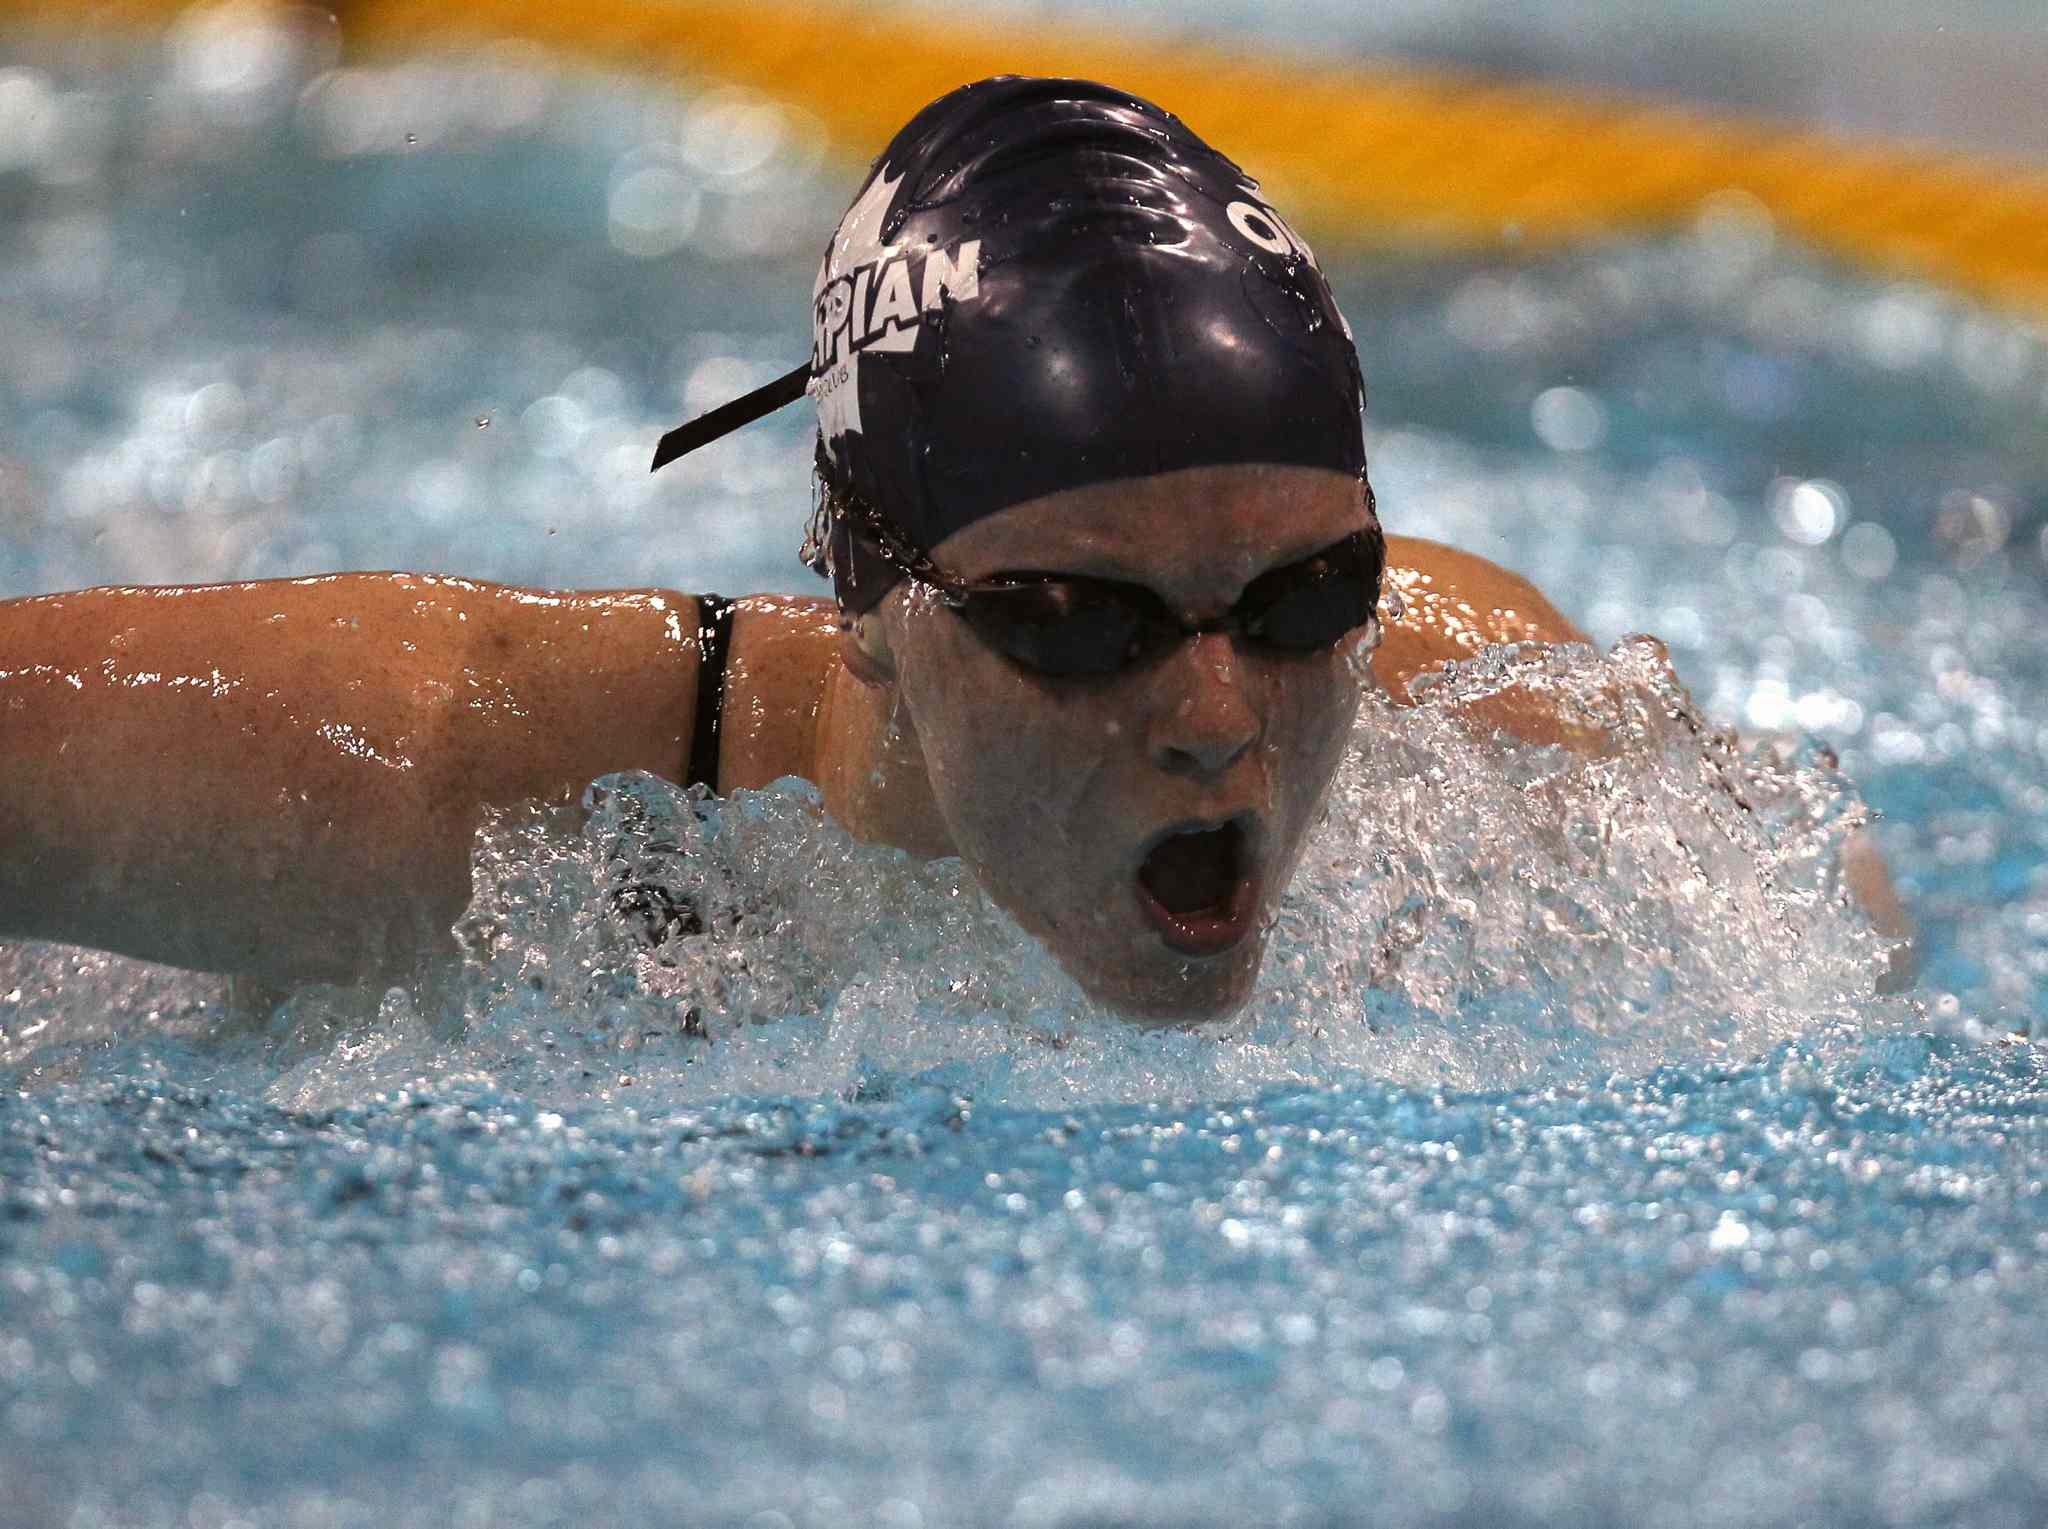 Jacomie Strydomof the Olympian Swim Club during her 16-18 year old girls' 200m butterfly final at the 2014 Canadian Age Group Championships at Pan Am Pool in Winnipeg. (JOE BRYKSA / WINNIPEG FREE PRESS)